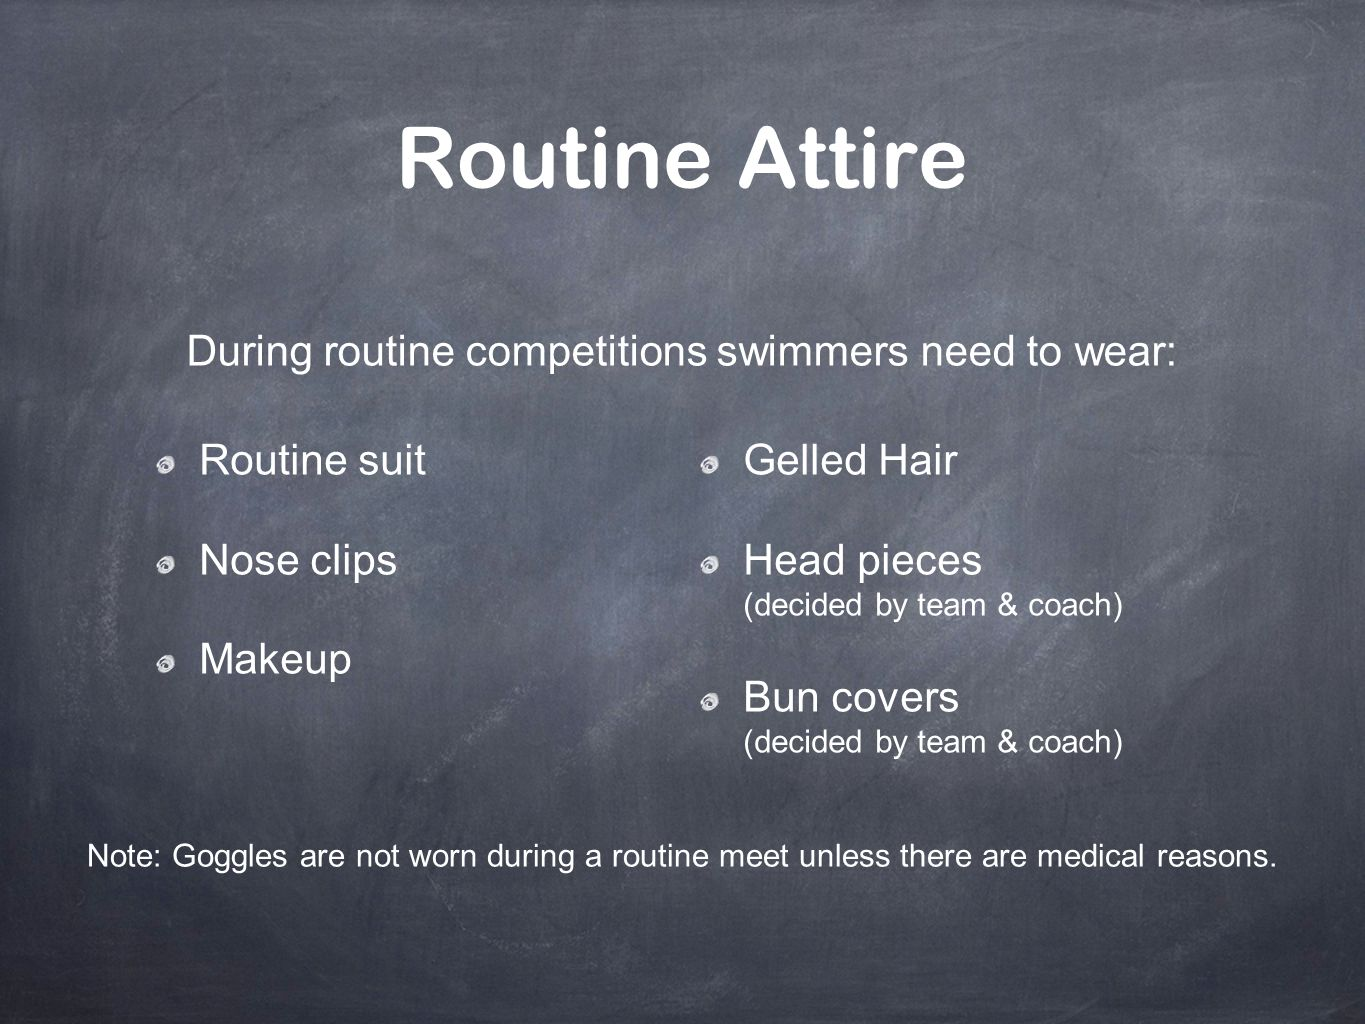 During routine competitions swimmers need to wear: